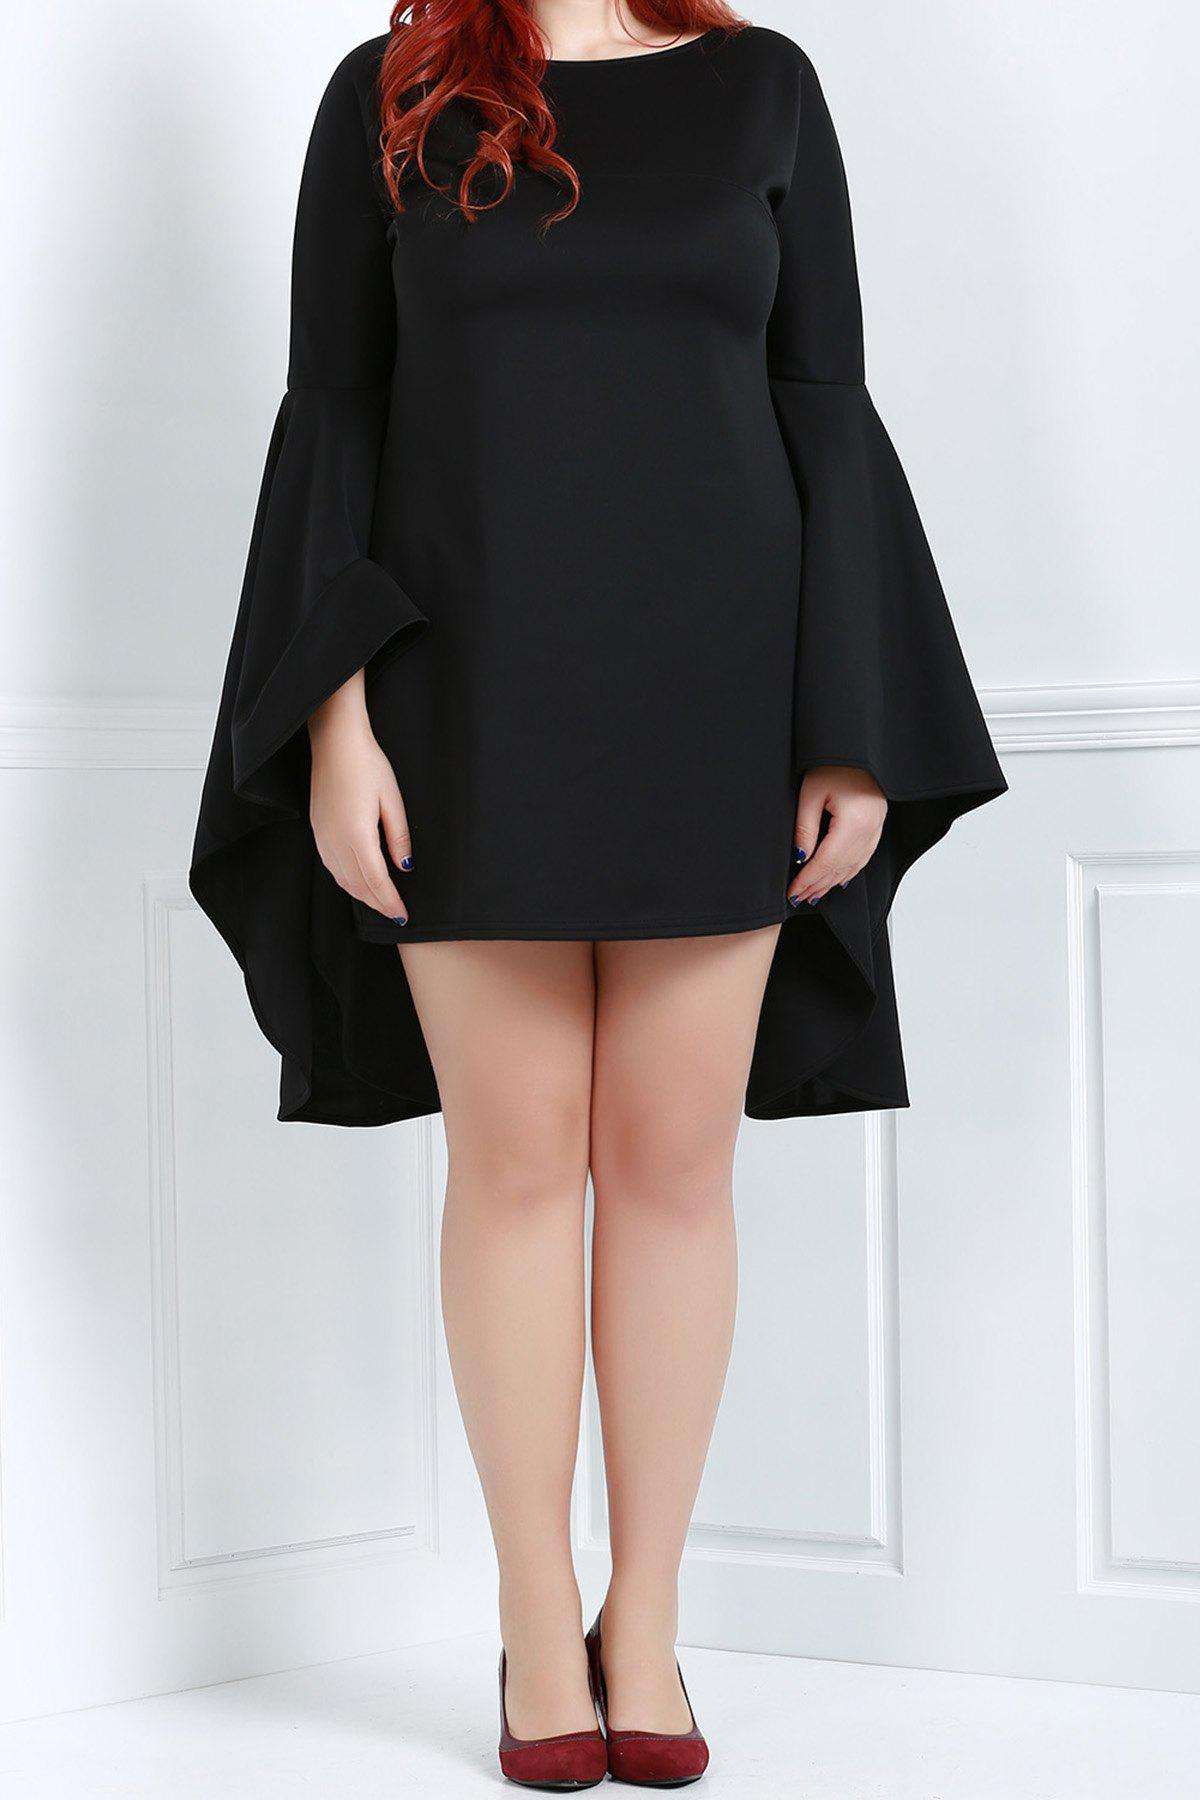 Stylish Black Boat Collar Long Bell Bottom Sleeve Plus Size Dress For Women - BLACK 3XL